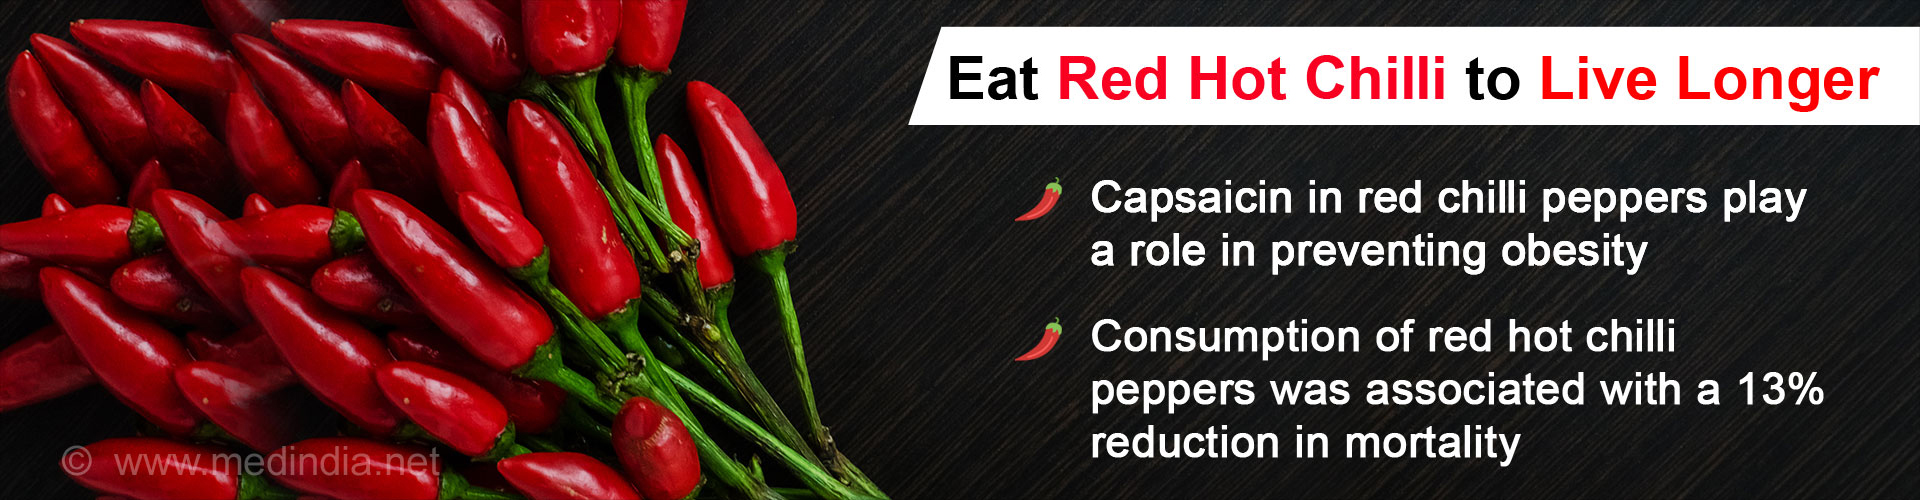 Eat Hot Peppers to Live Longer